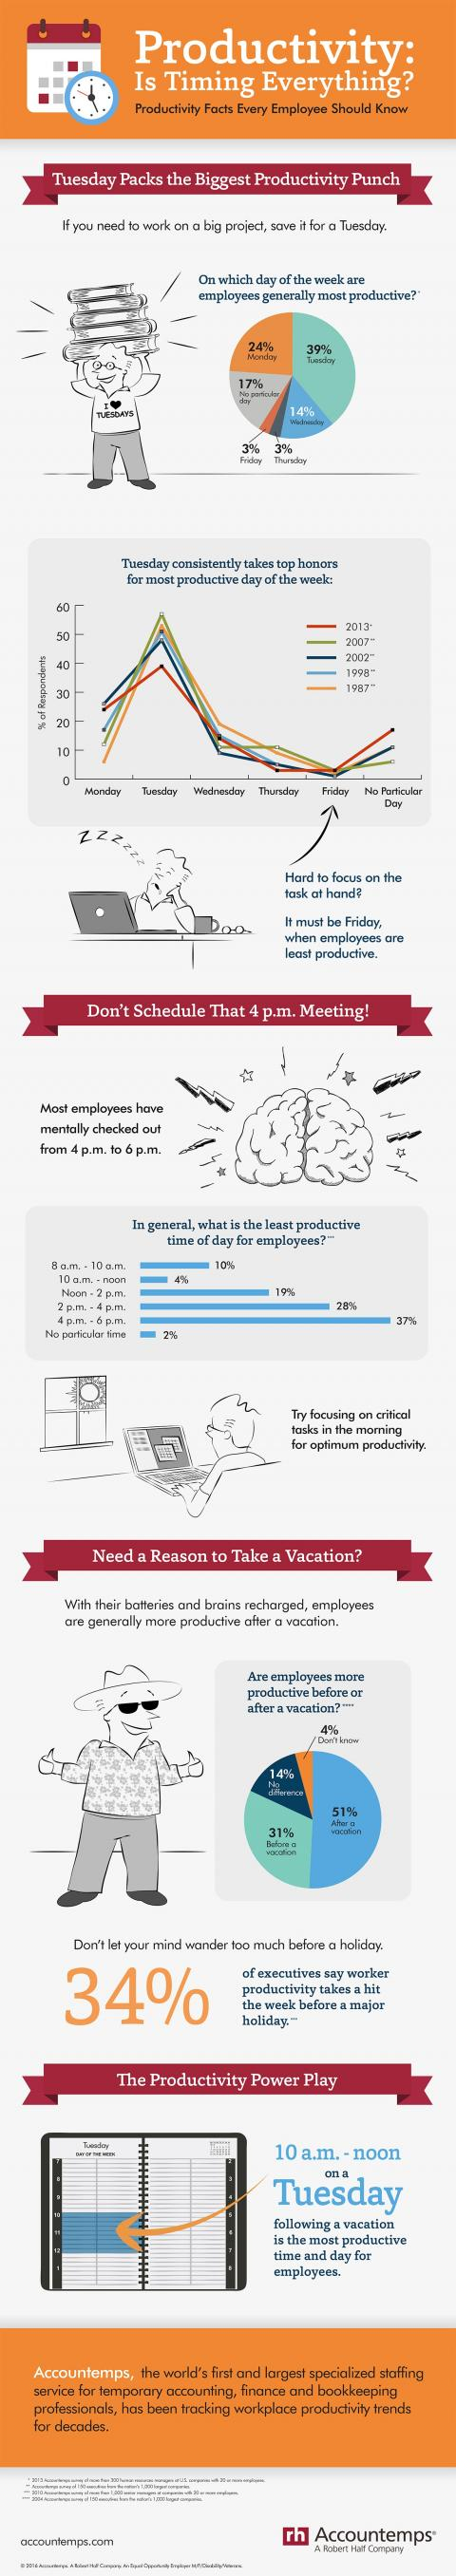 An infographic showing the results of Accountemps surveys on employee productivity